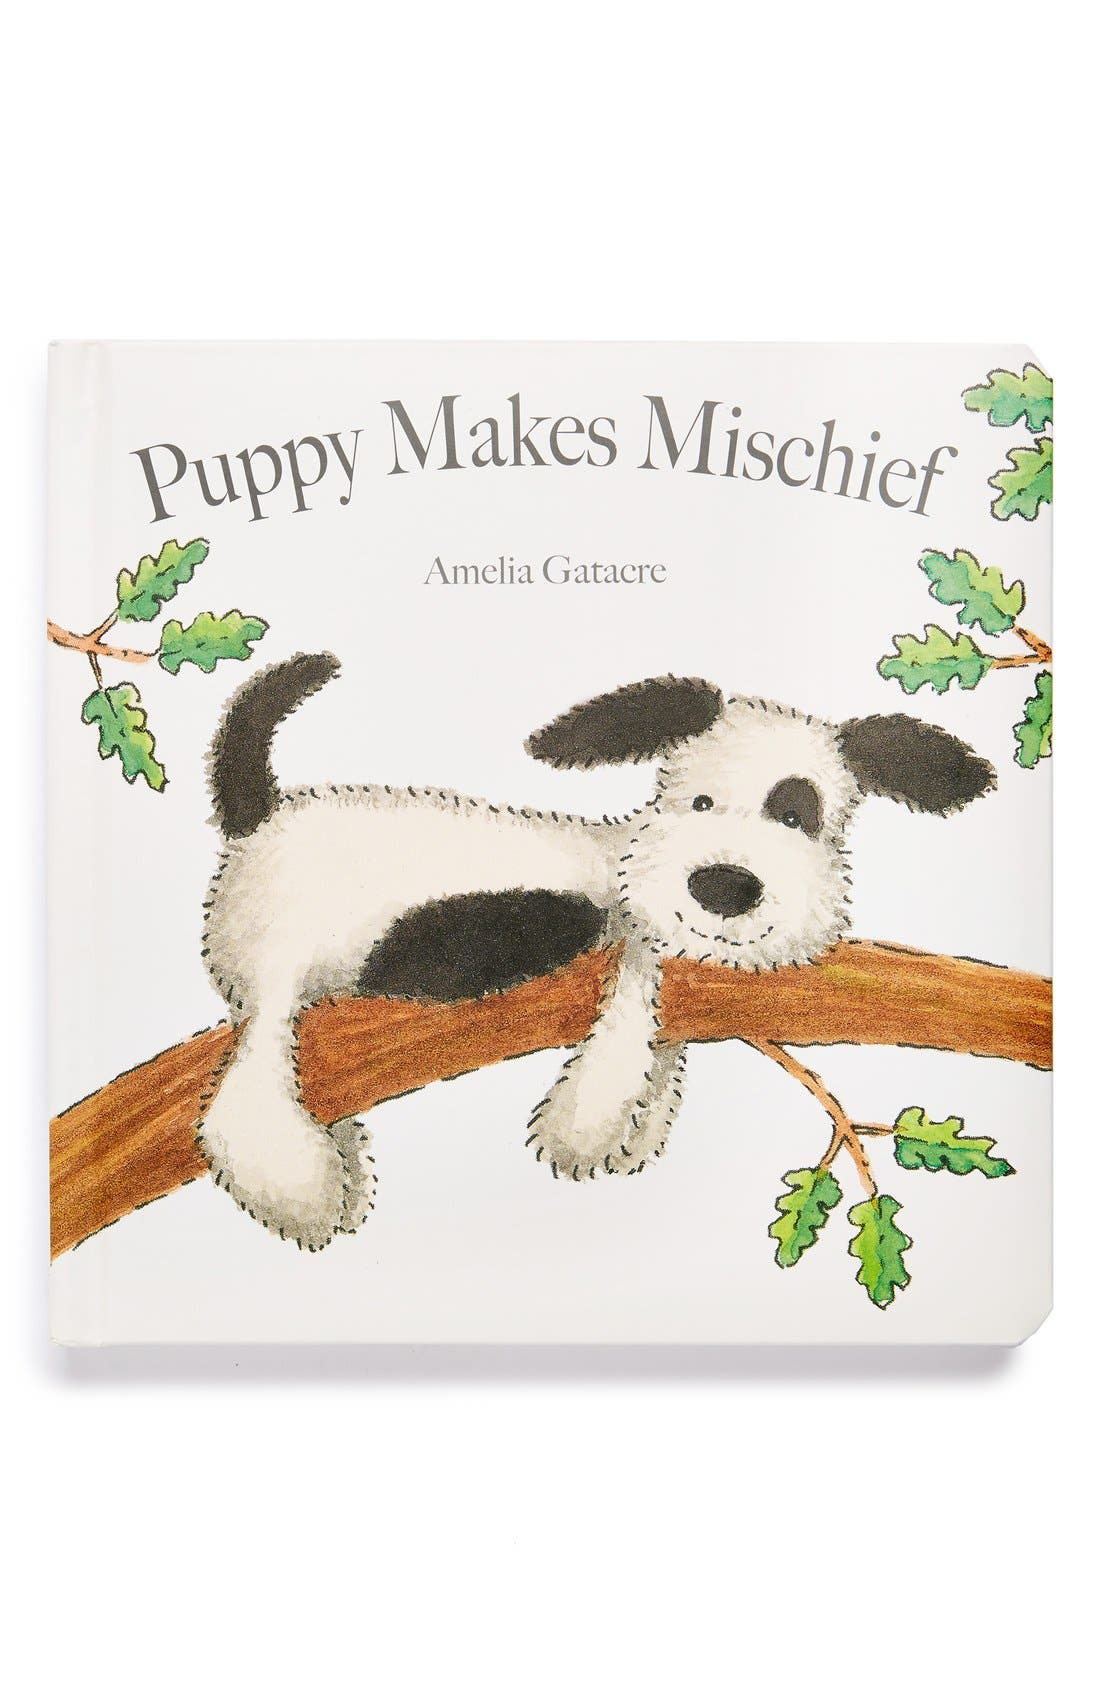 'Puppy Makes Mischief' Board Book